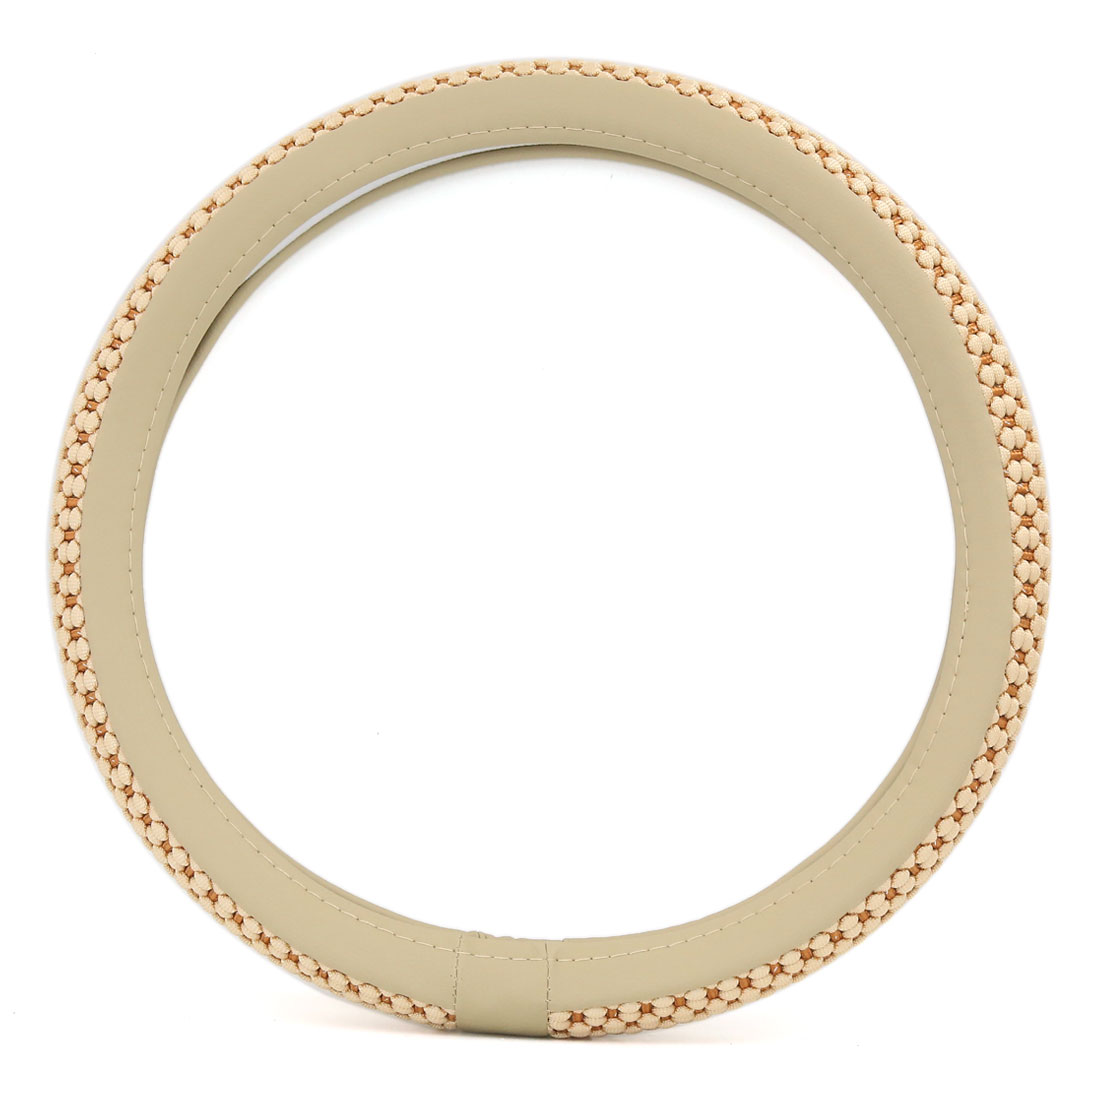 Automotive Comfort Odorless Breathable Safety Steering Wheel Cover 38cm Outer Dia Beige